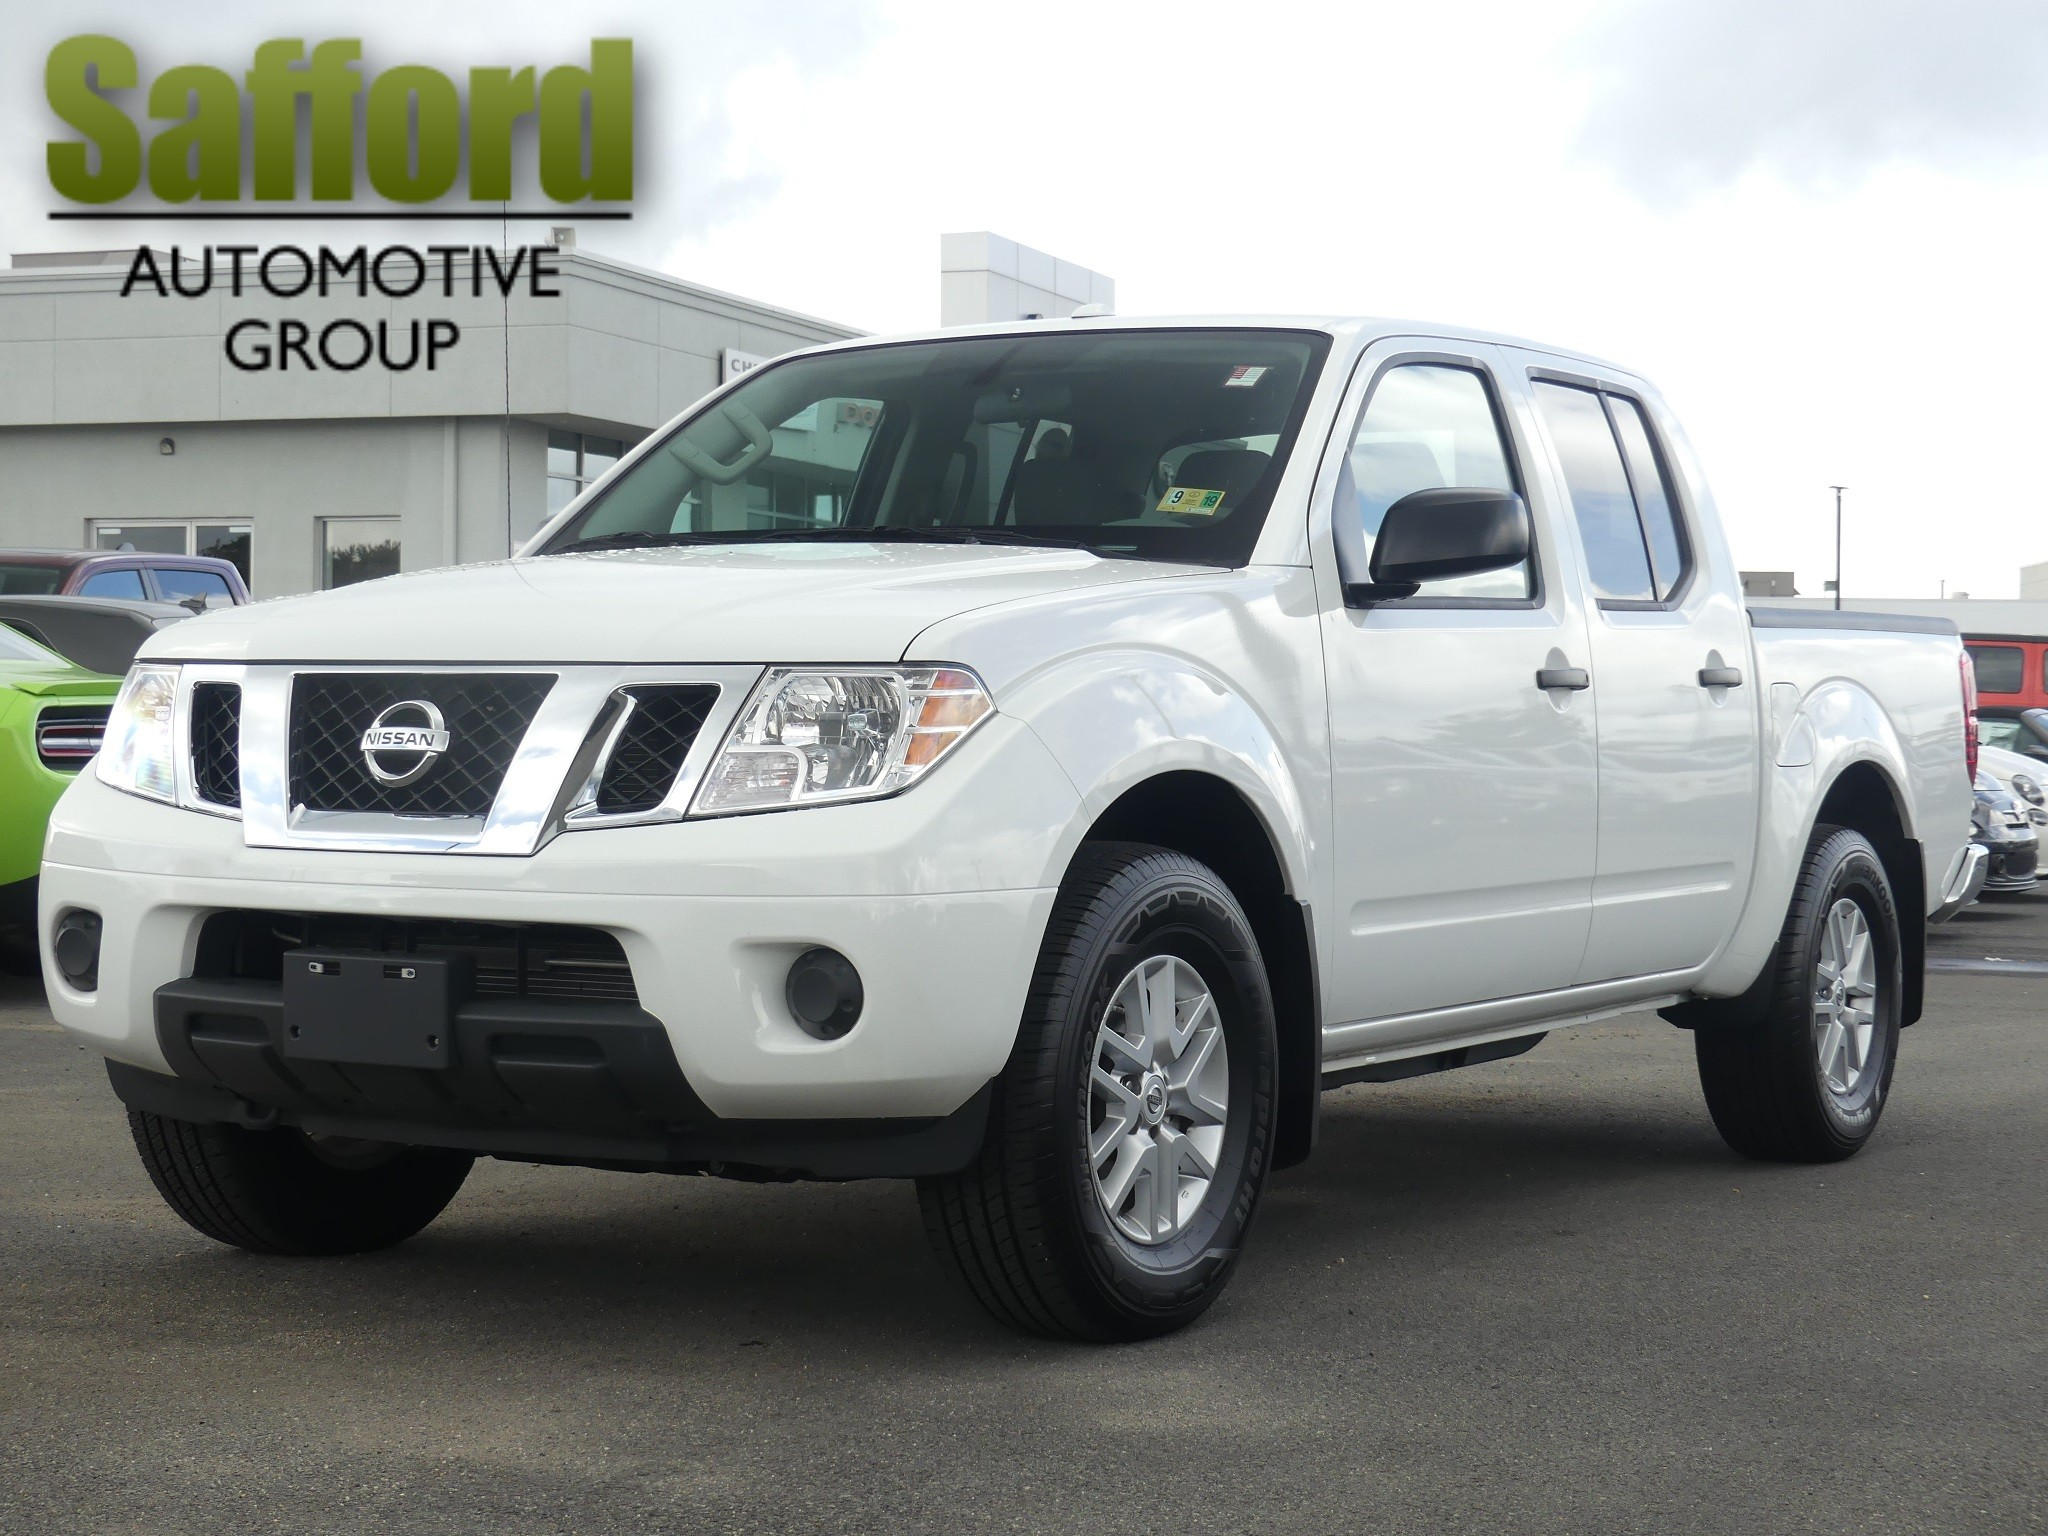 Nissan Truck Parts Diagram Pre Owned 2018 Nissan Frontier S Crew Cab Pickup In Salisbury Of Nissan Truck Parts Diagram New 2018 Nissan Frontier Sv V6 Crew Cab Pickup In Salt Lake City